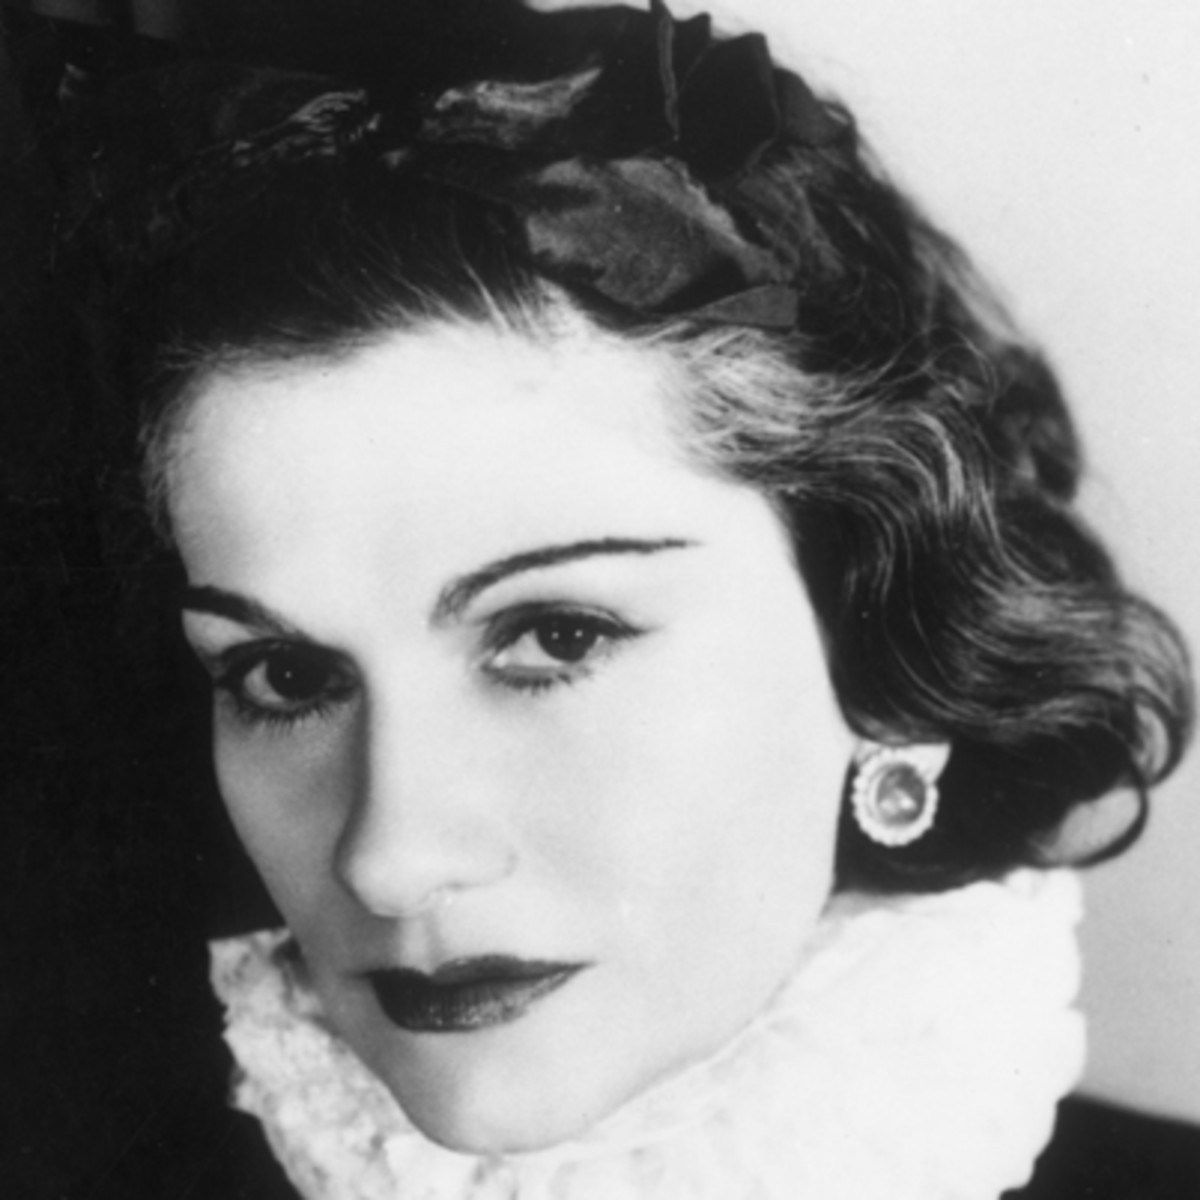 15 INTERESTING FACTS ABOUT COCO CHANEL - Lagan Randhawa - Medium